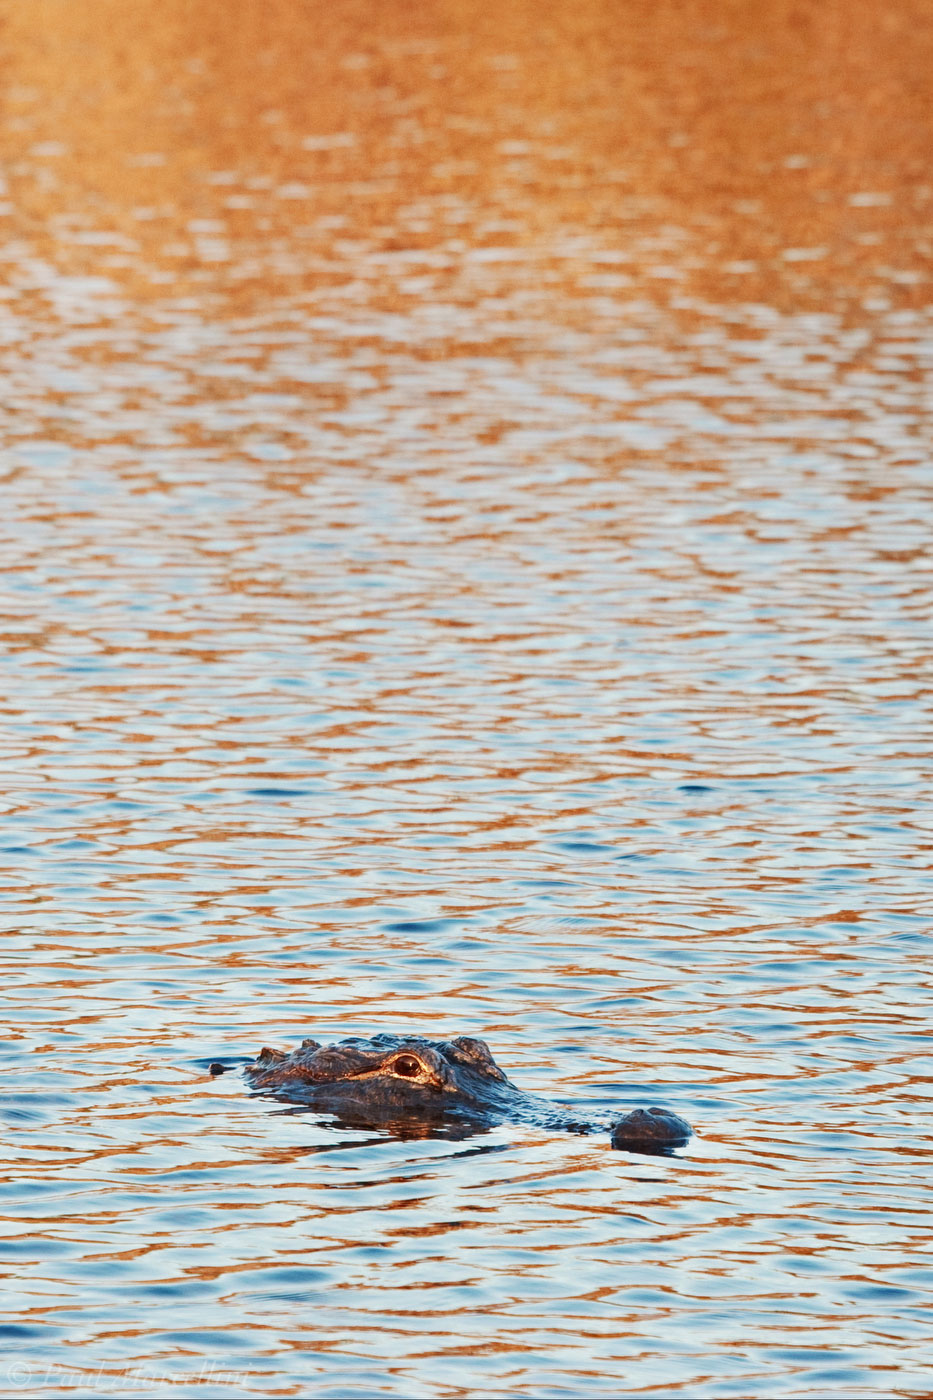 An American alligator (Alligator mississippiensis) with rippled water reflecting the blue sky and orange light of the afternoon...